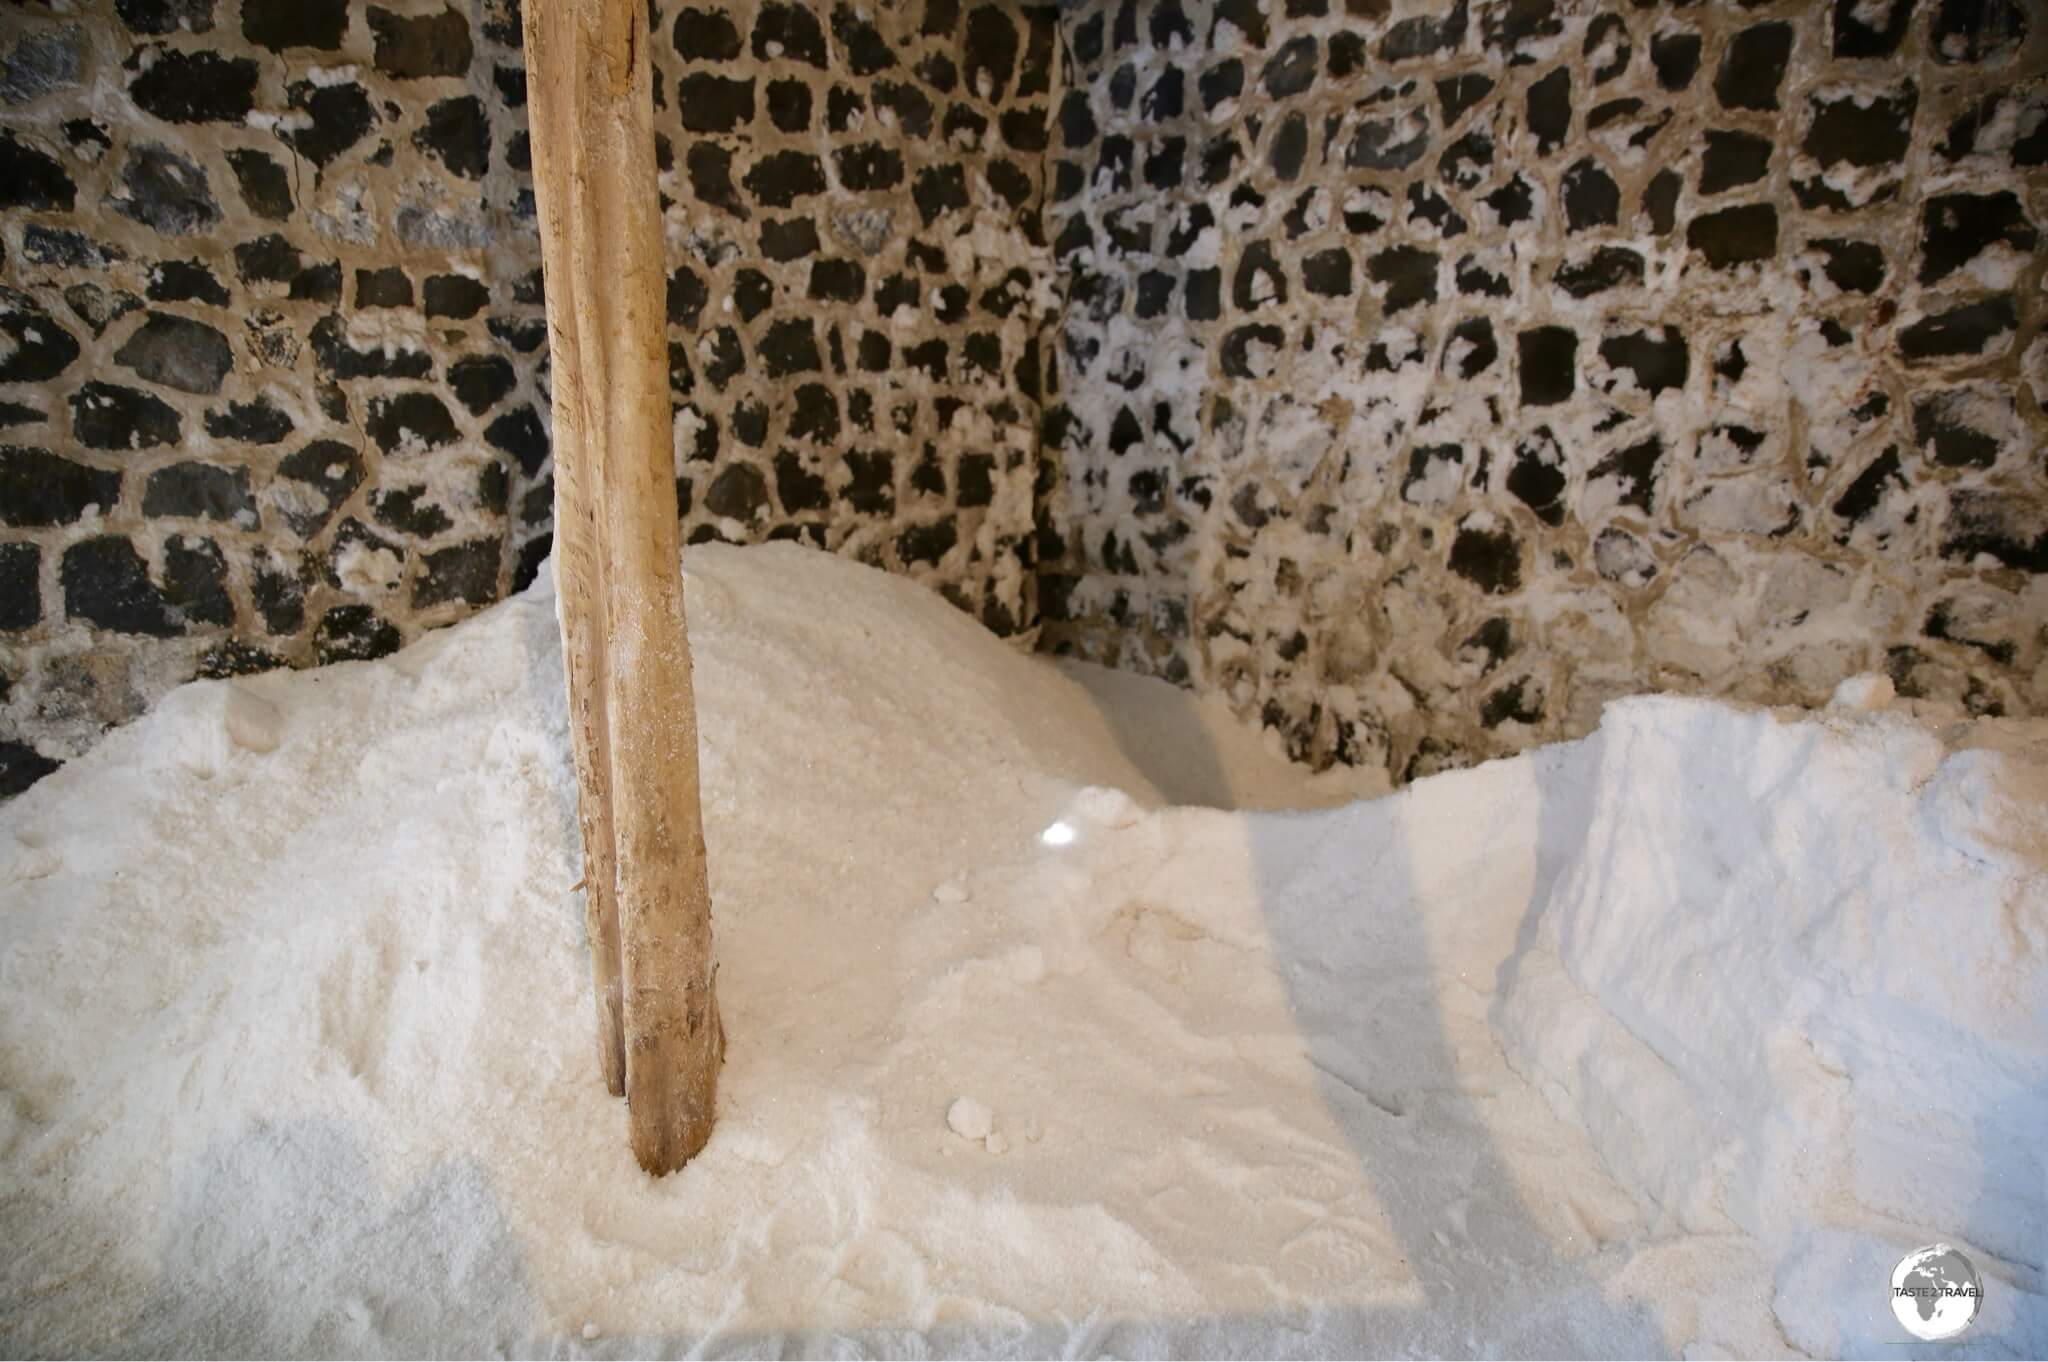 Sea salt, ready to be packaged, at Les Salines de Yemen.